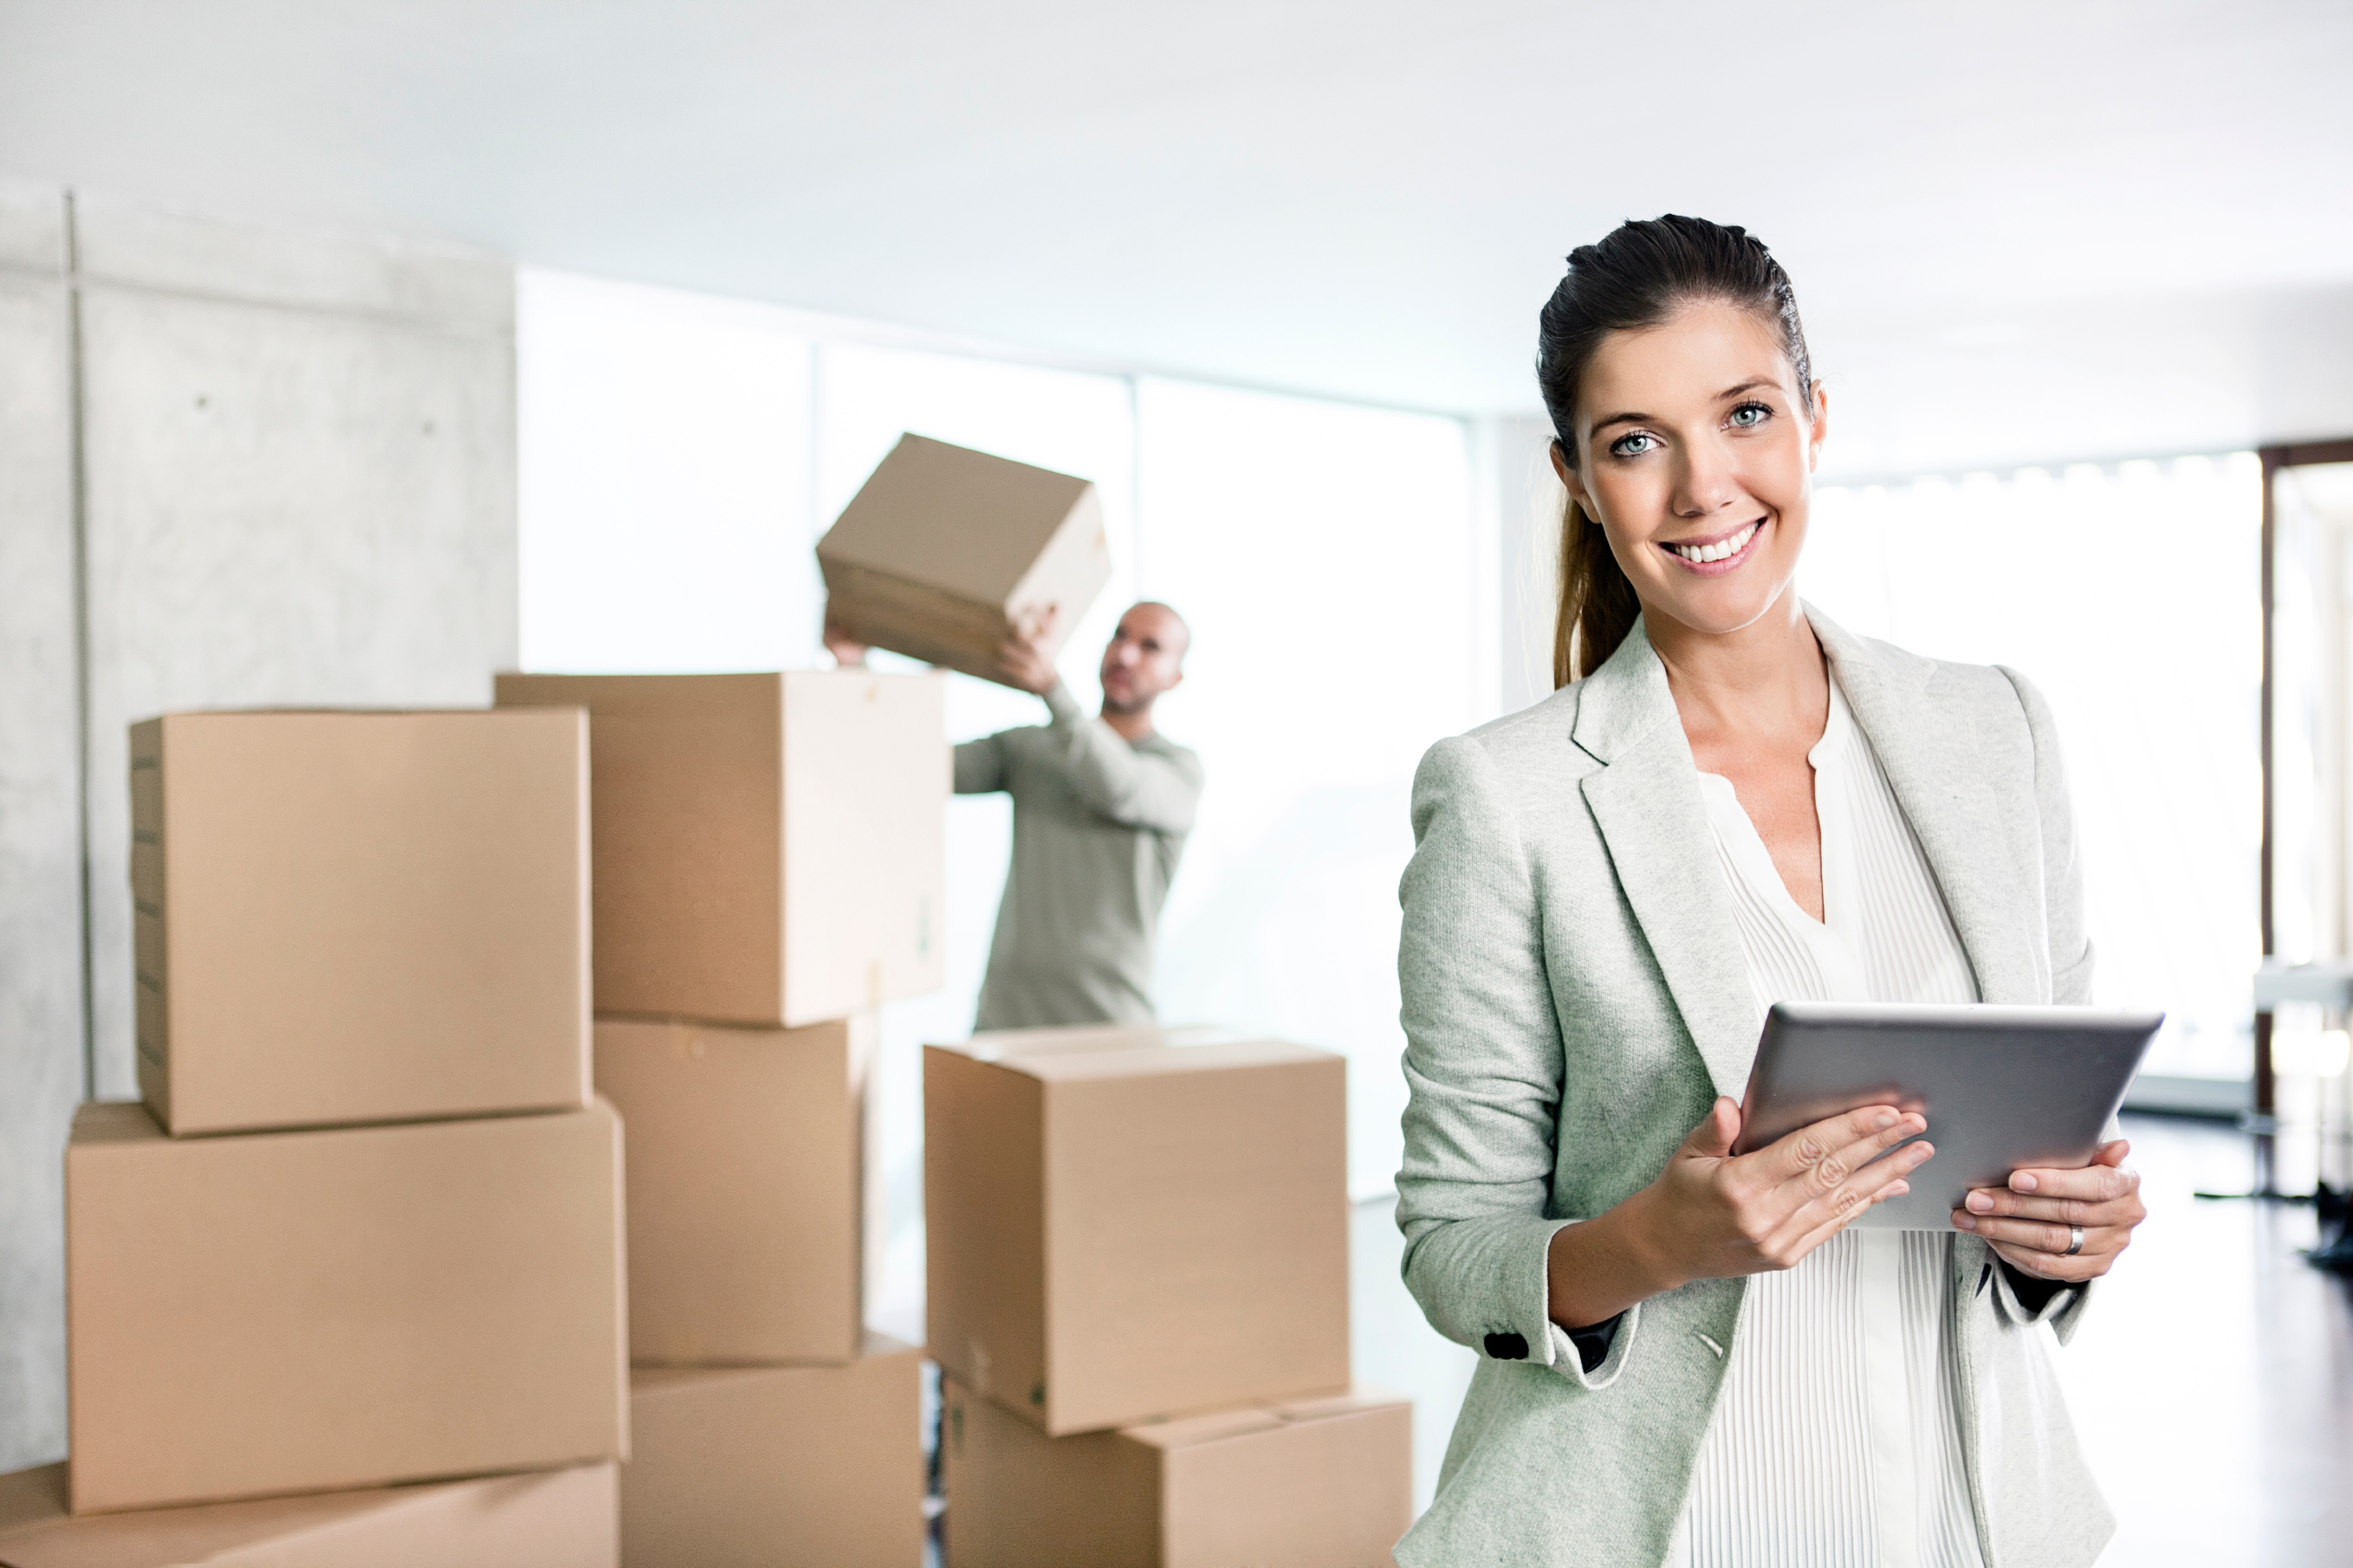 smiling woman in front of man stacking boxes